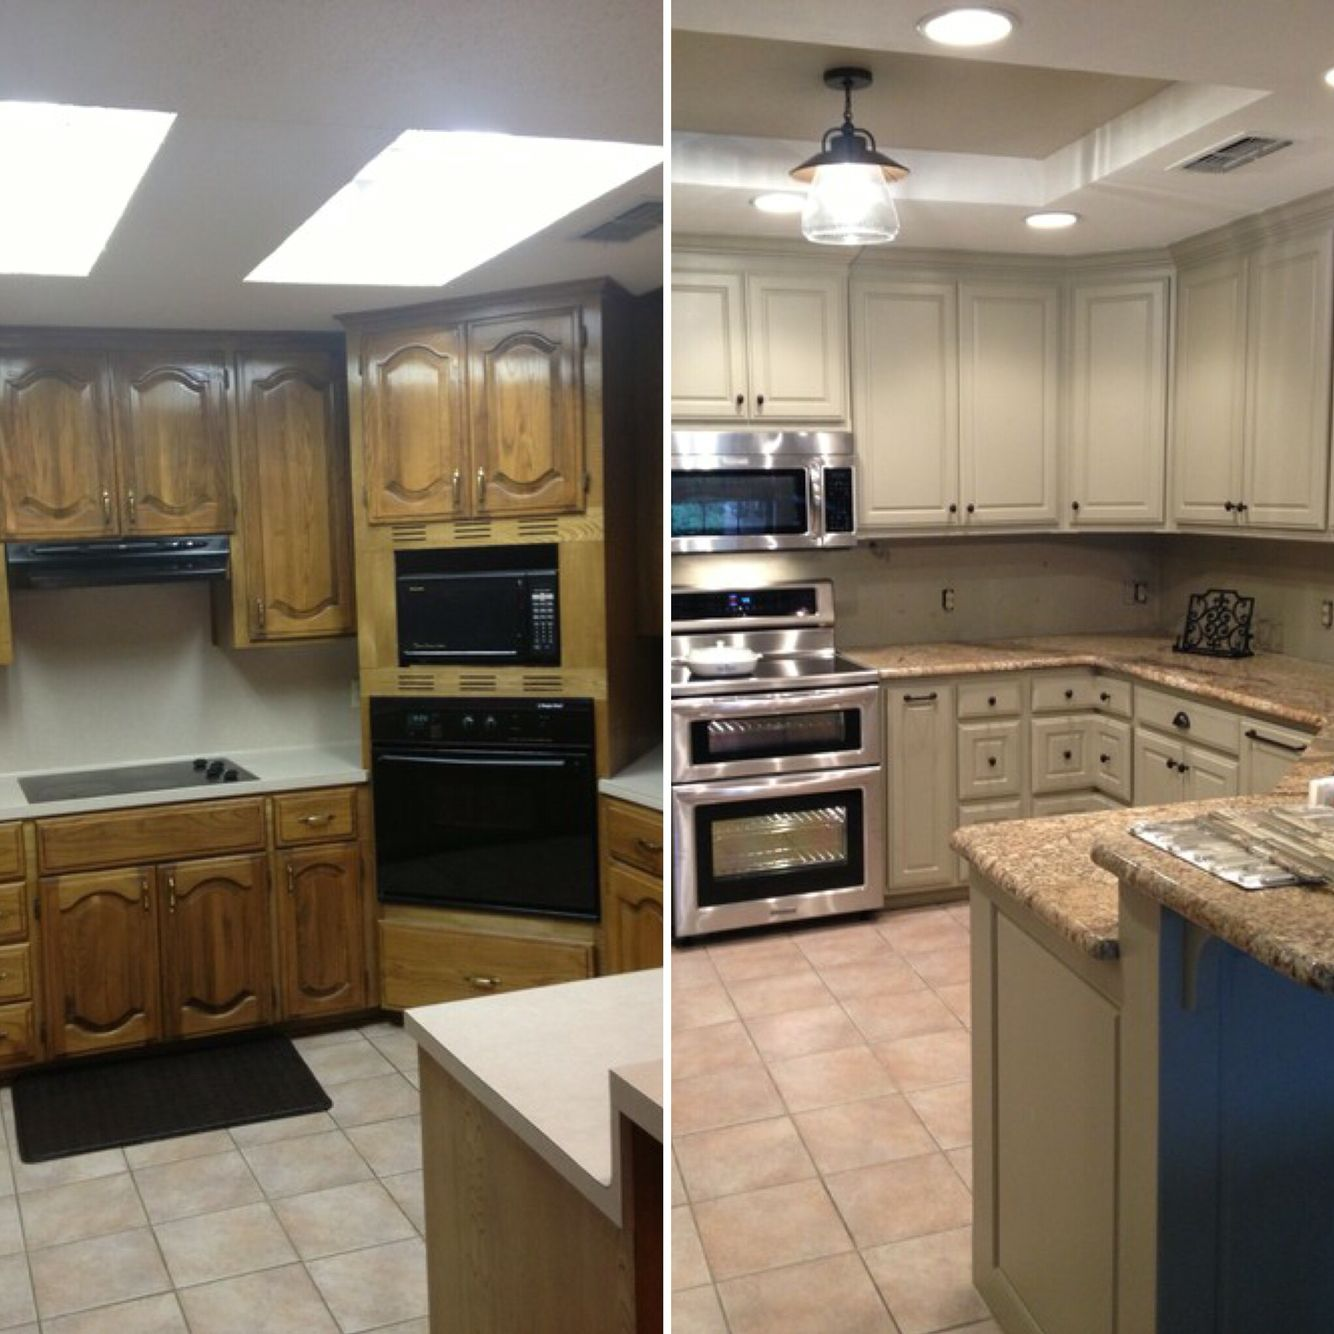 Recessed Lights In Kitchen Az Recessed Lighting Kitchen Conversion One Of Our Great Passions